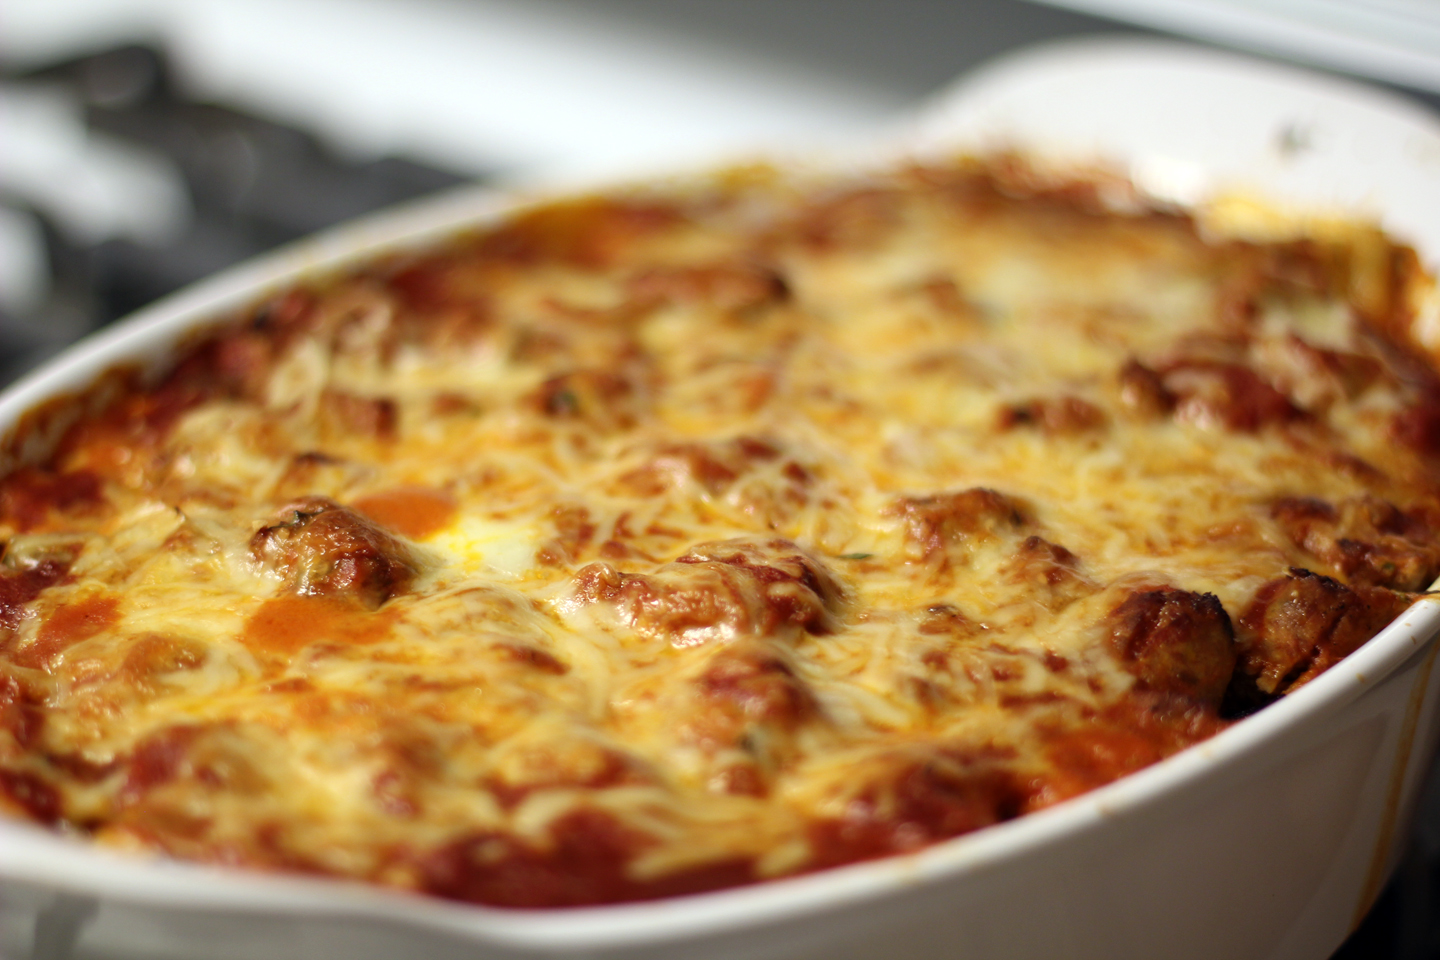 Baked Ziti - adapted from Cooks Illustrated